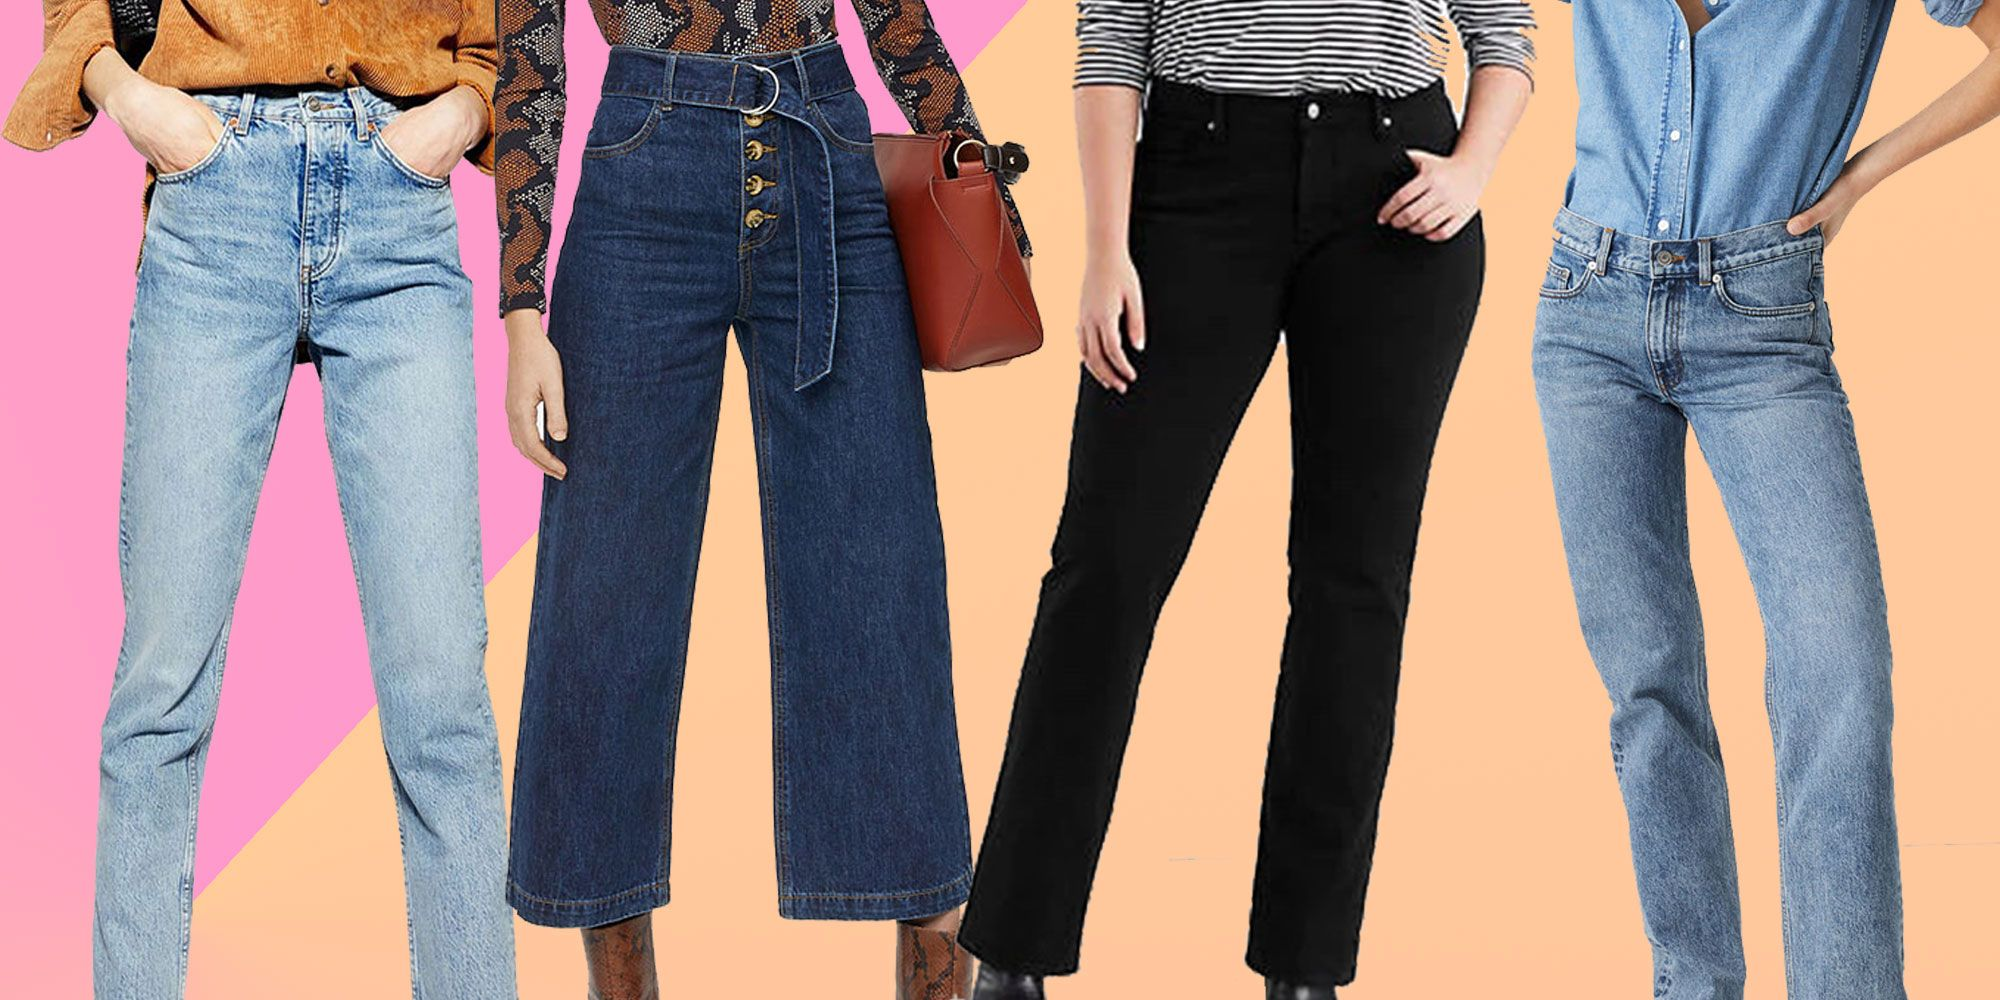 3e07964498 Best jeans - our pick of the 24 best jeans for women